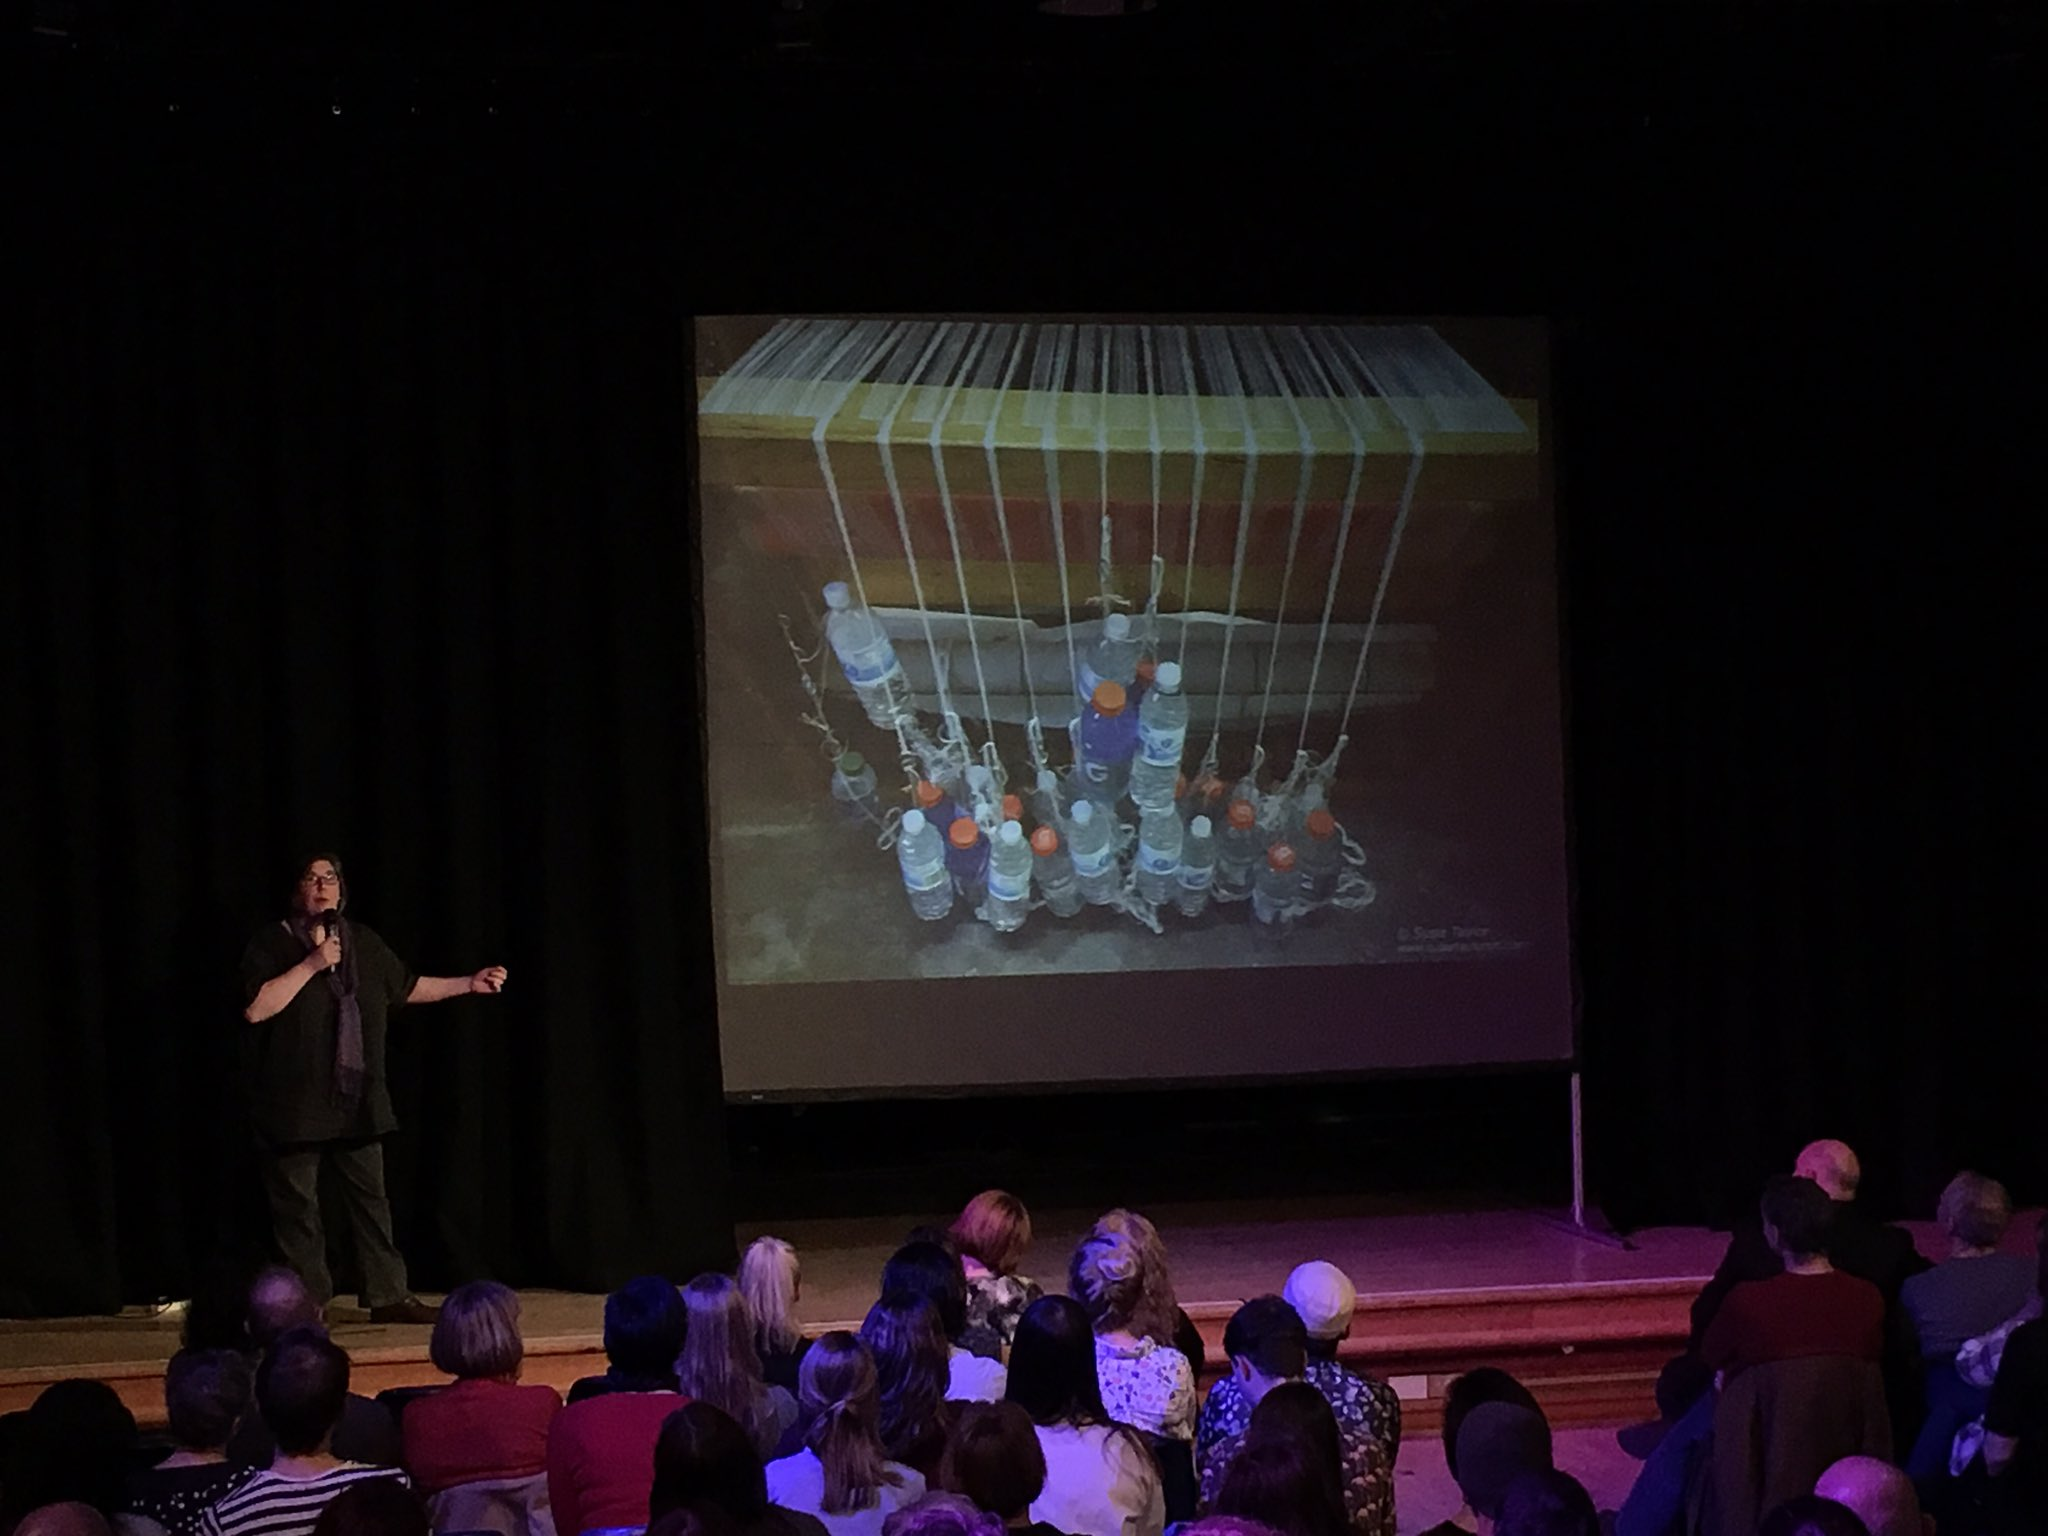 Loom hacking it's a thing  #PKN_DND https://t.co/xZVR0oqjhL